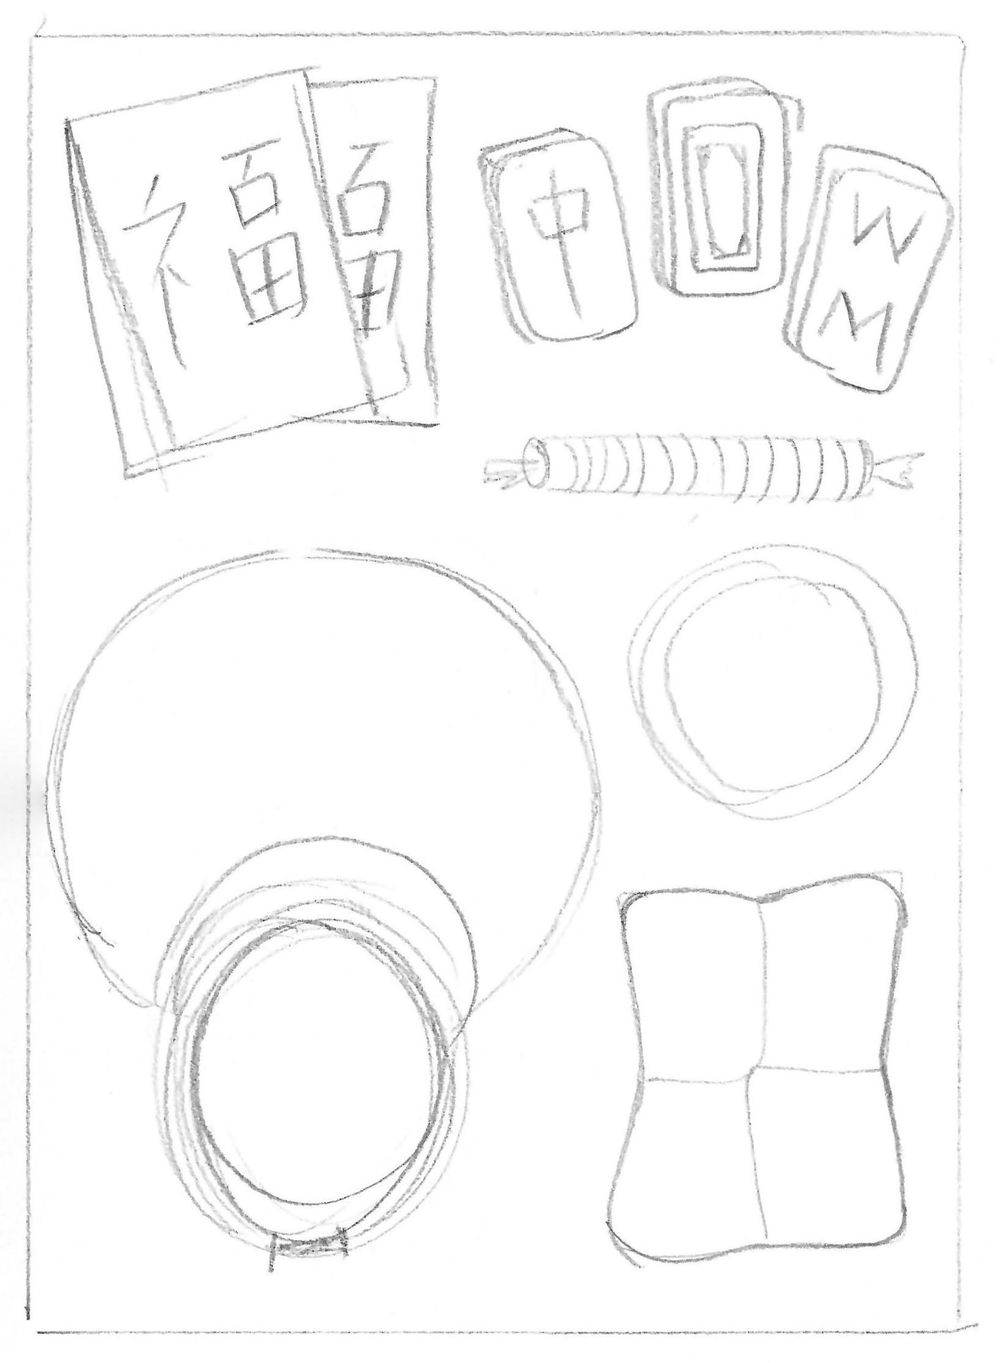 Tools of the Trade: Chinese Grandma - image 1 - student project